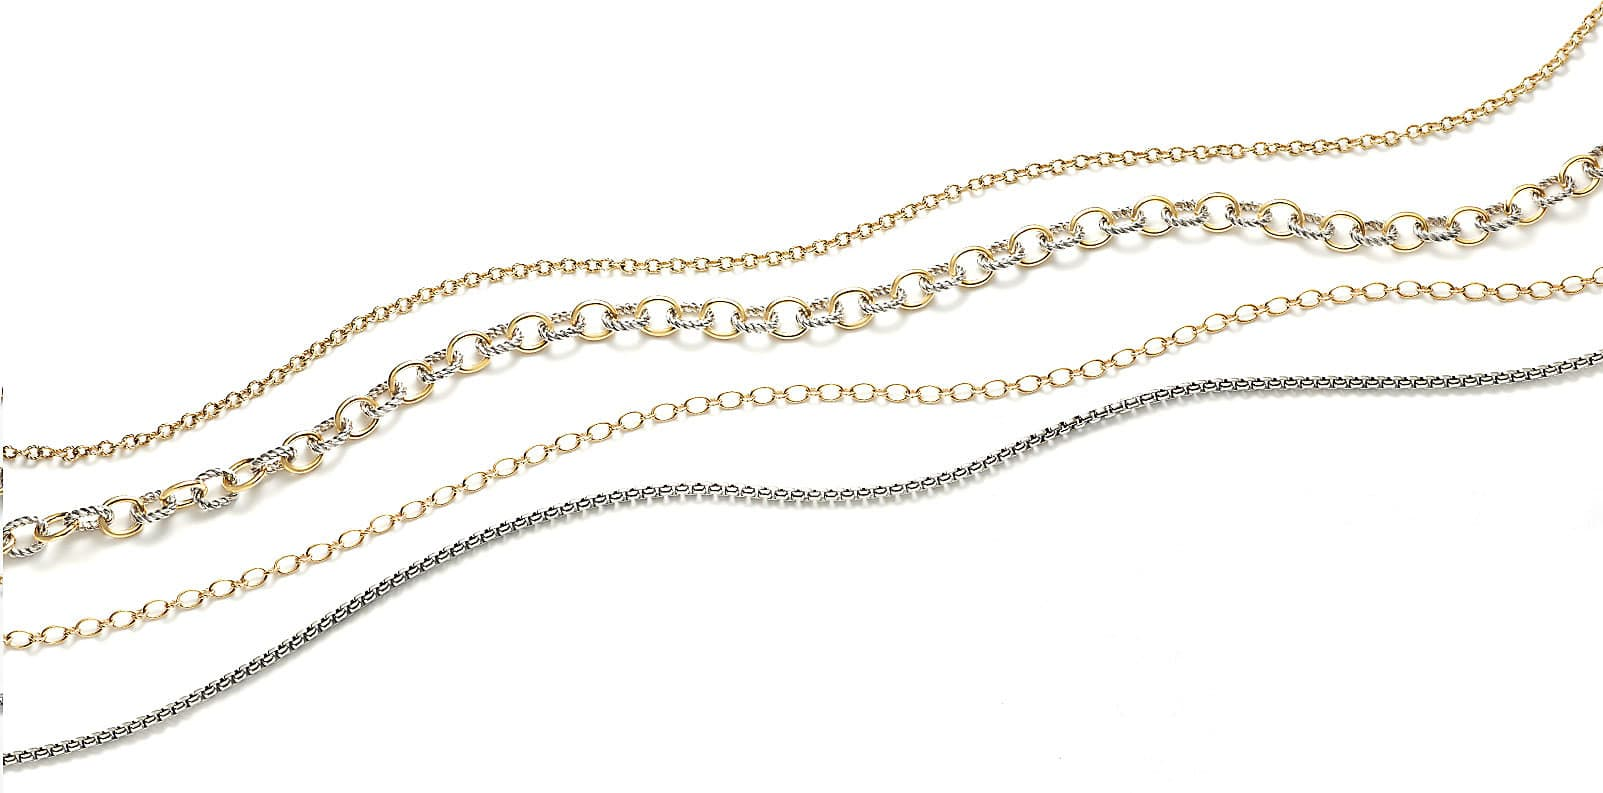 Layers of 18k yellow gold and sterling silver chains